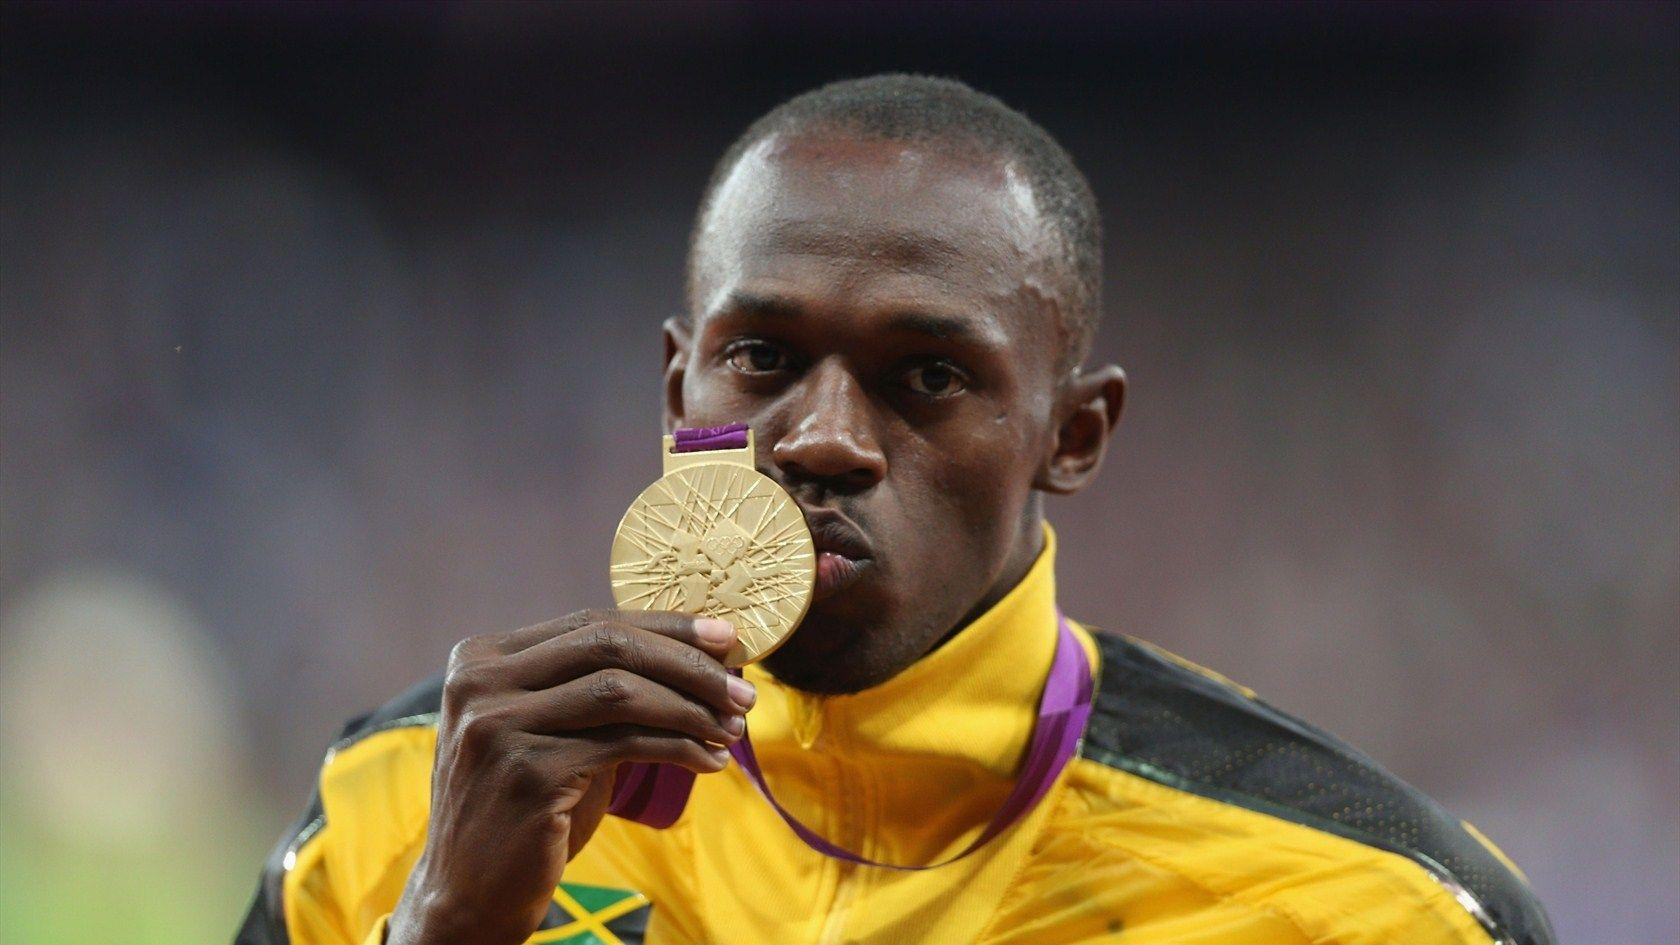 Usain Bolt Atletic Wallpaper | ardiwallpaper.